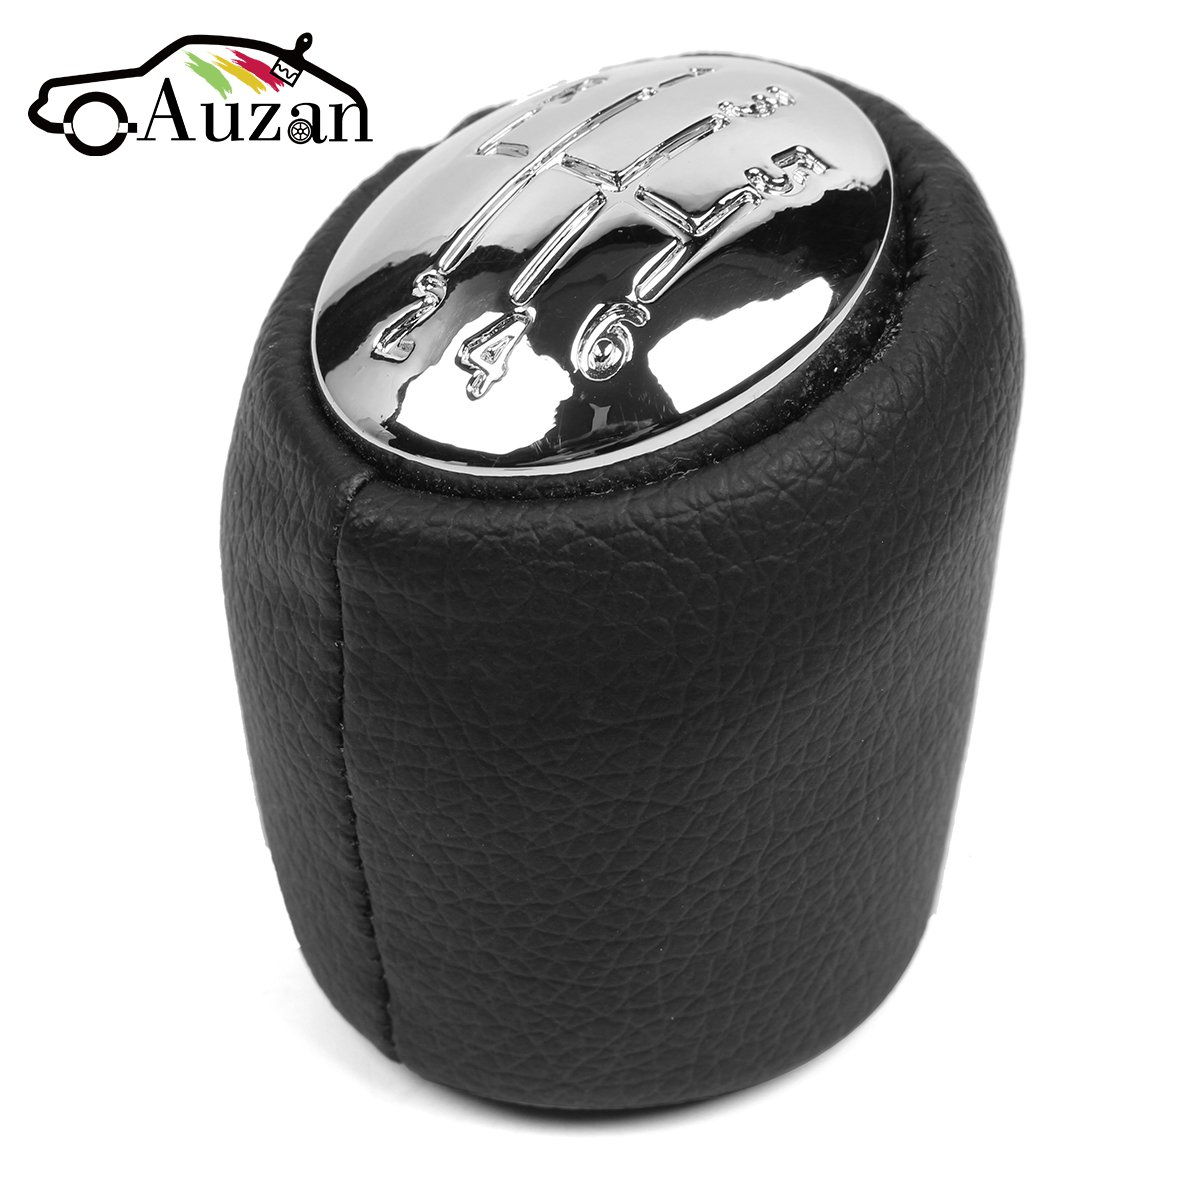 6 Speed Car Gear Shift Knob Gear Handball Head Knob Chrome Caps For Renault Laguna II 2 Mk2 2001 2002 2003 2004 2005 2006 2007 цена